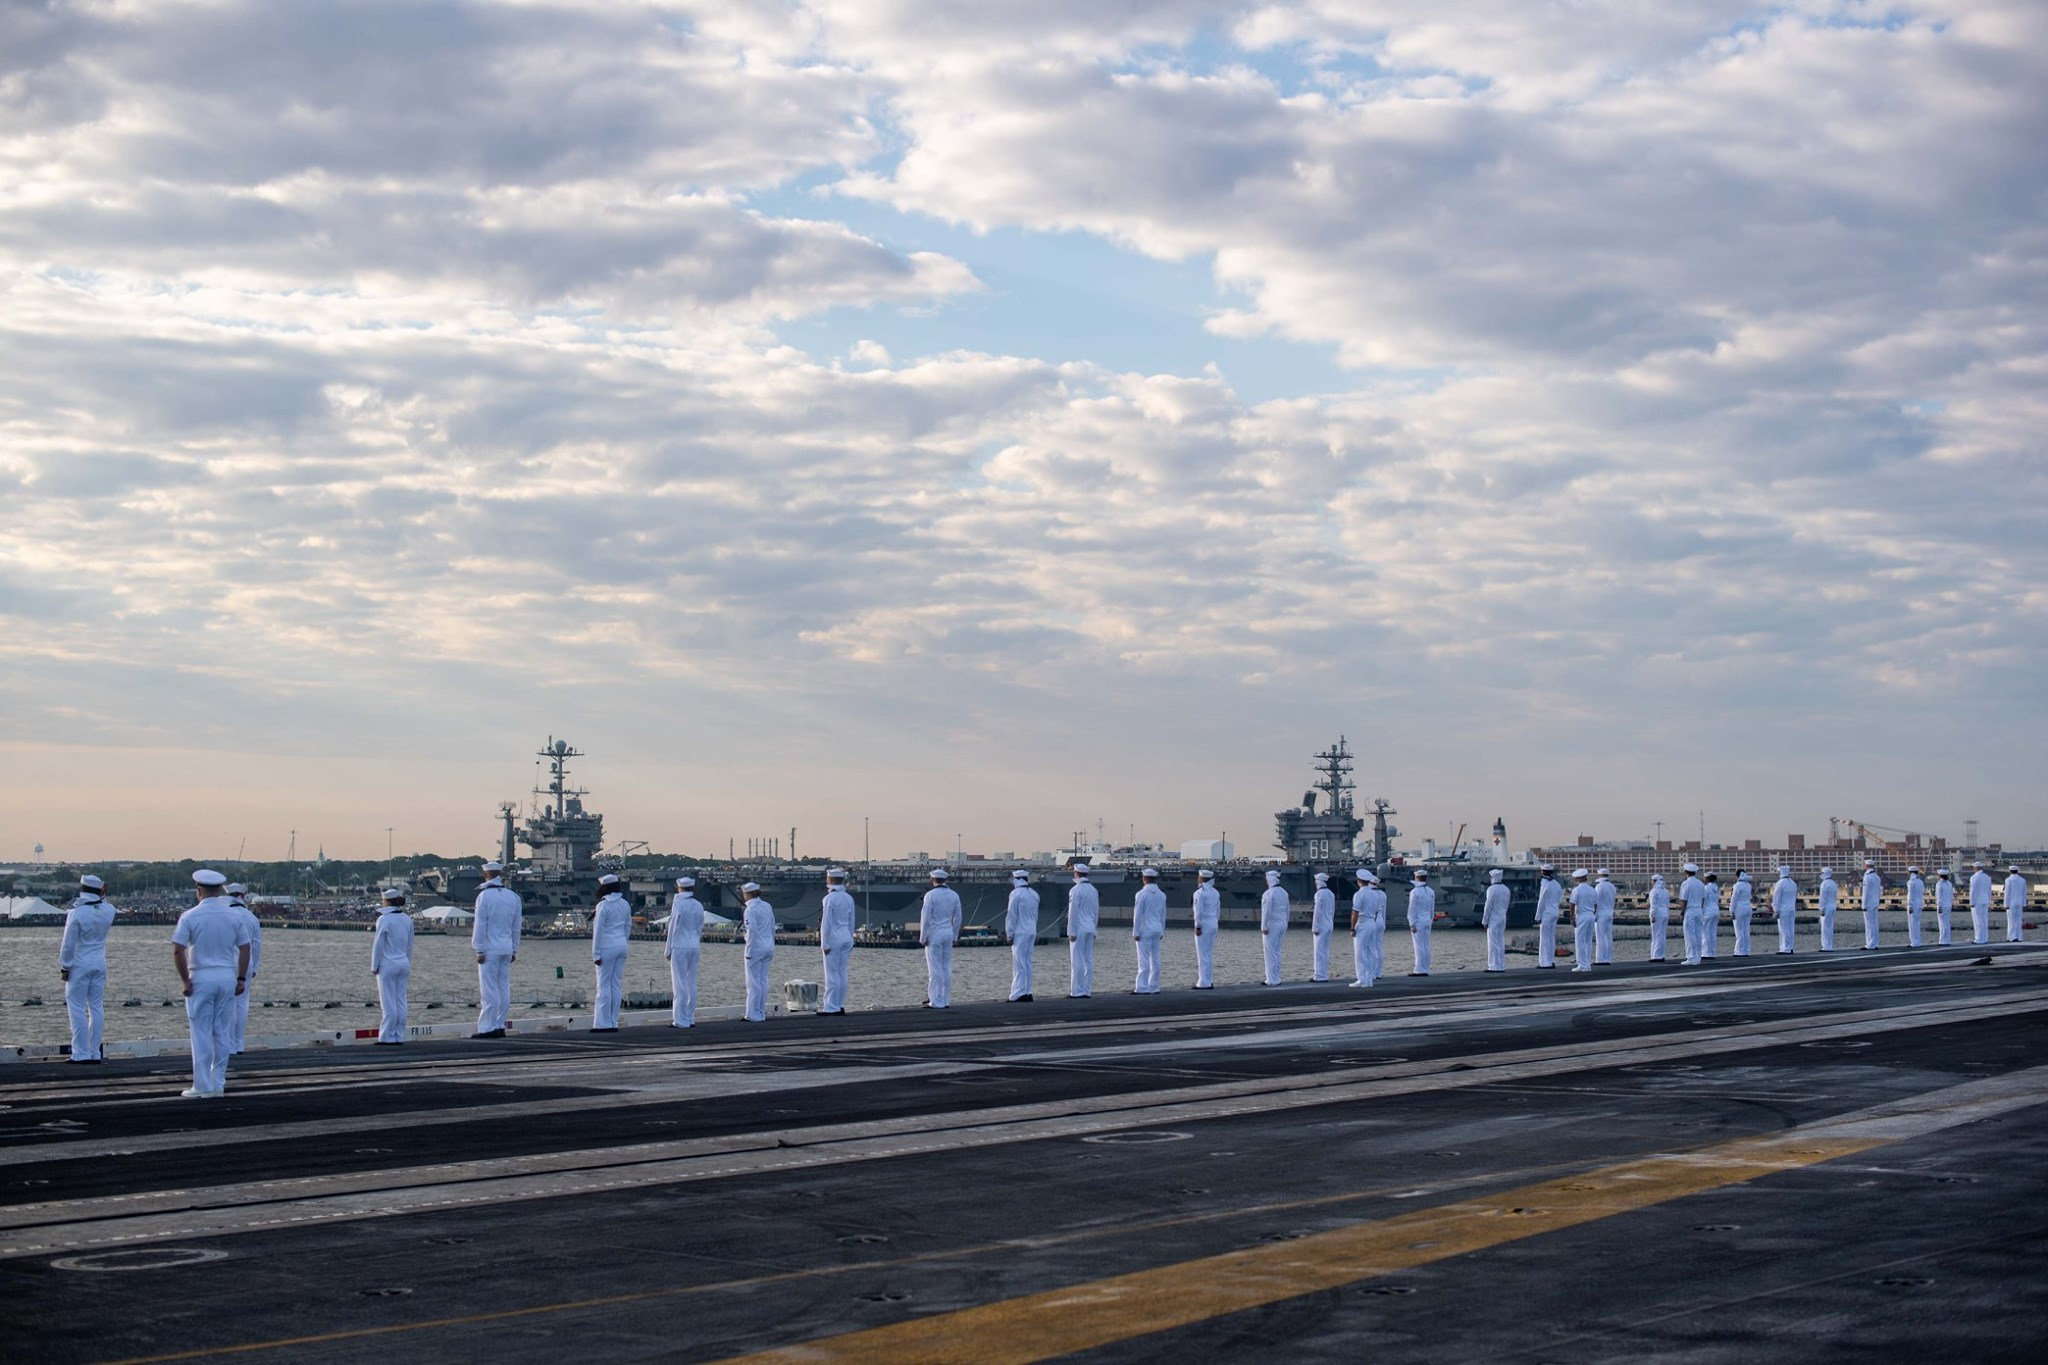 Aircraft Carrier Arrives at New Homeport of Norfolk